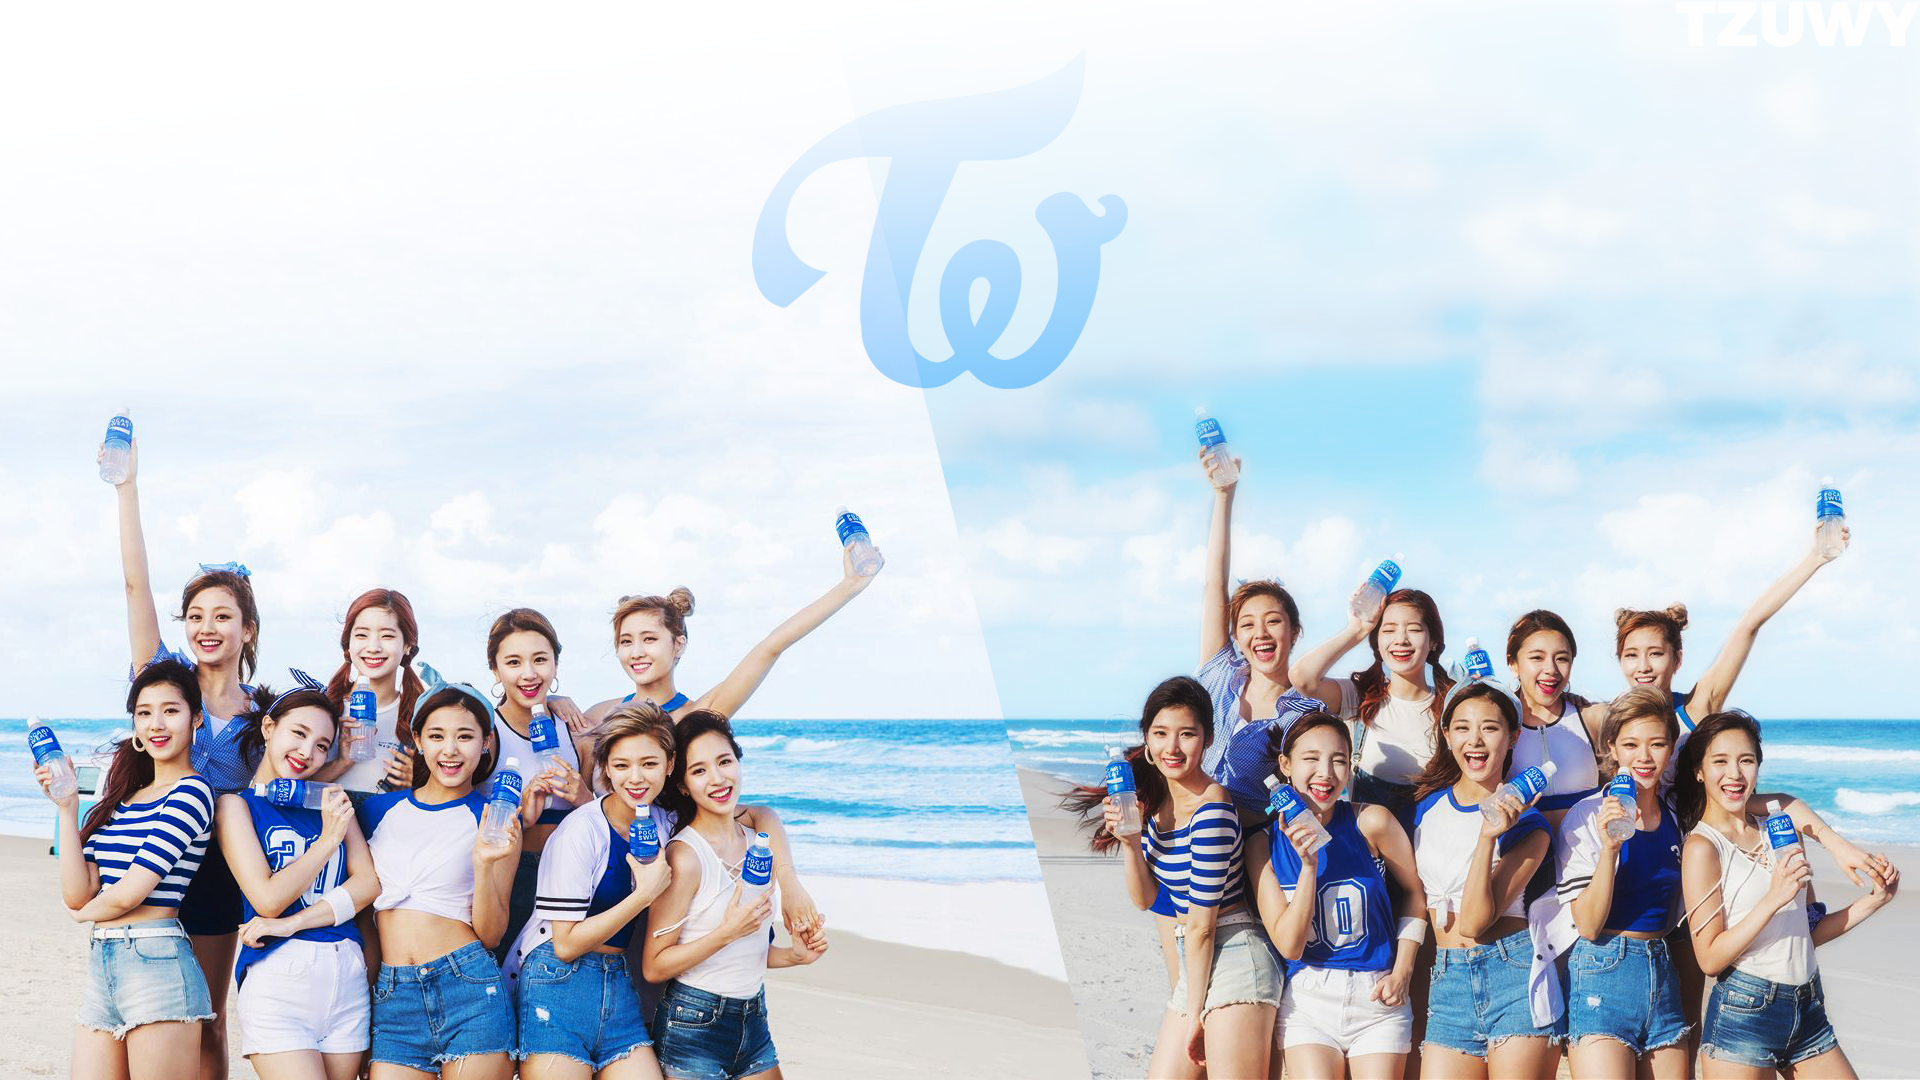 TWICE x Pocari wallpaper 1080p twice 1920x1080